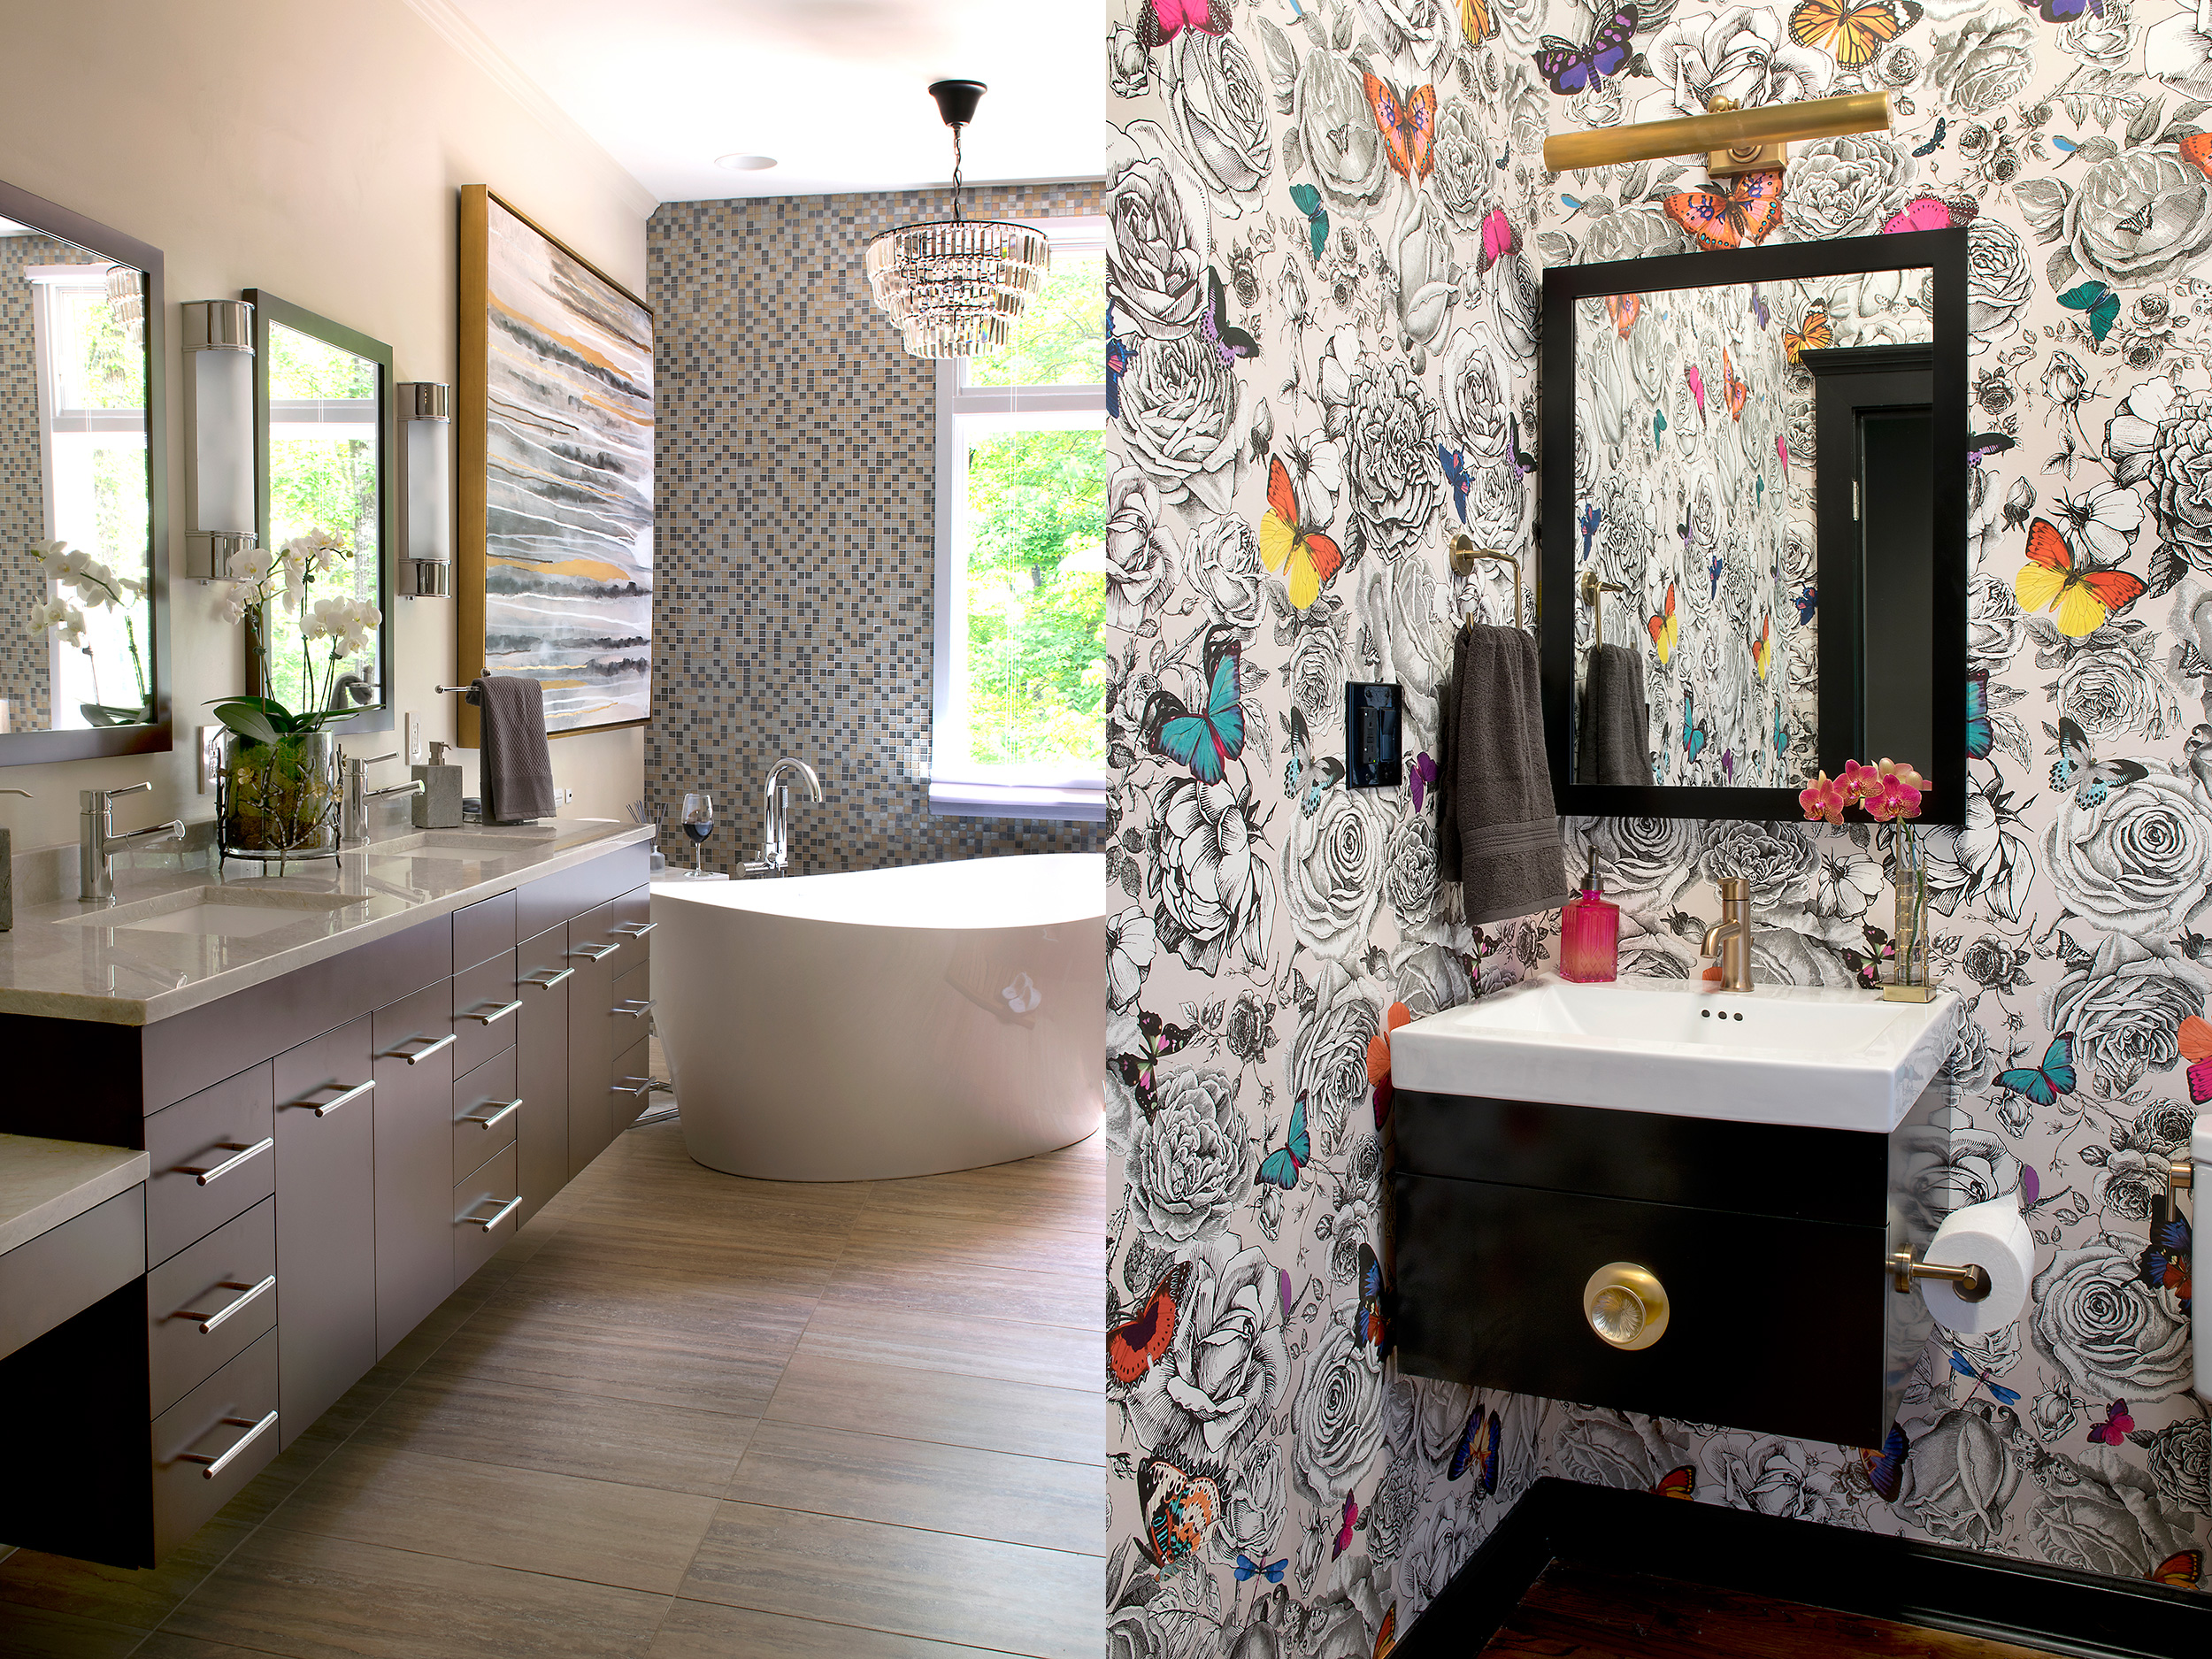 Bathroom Remodel Ideas 2017 bathroom trends for 2017 - haskell's blog